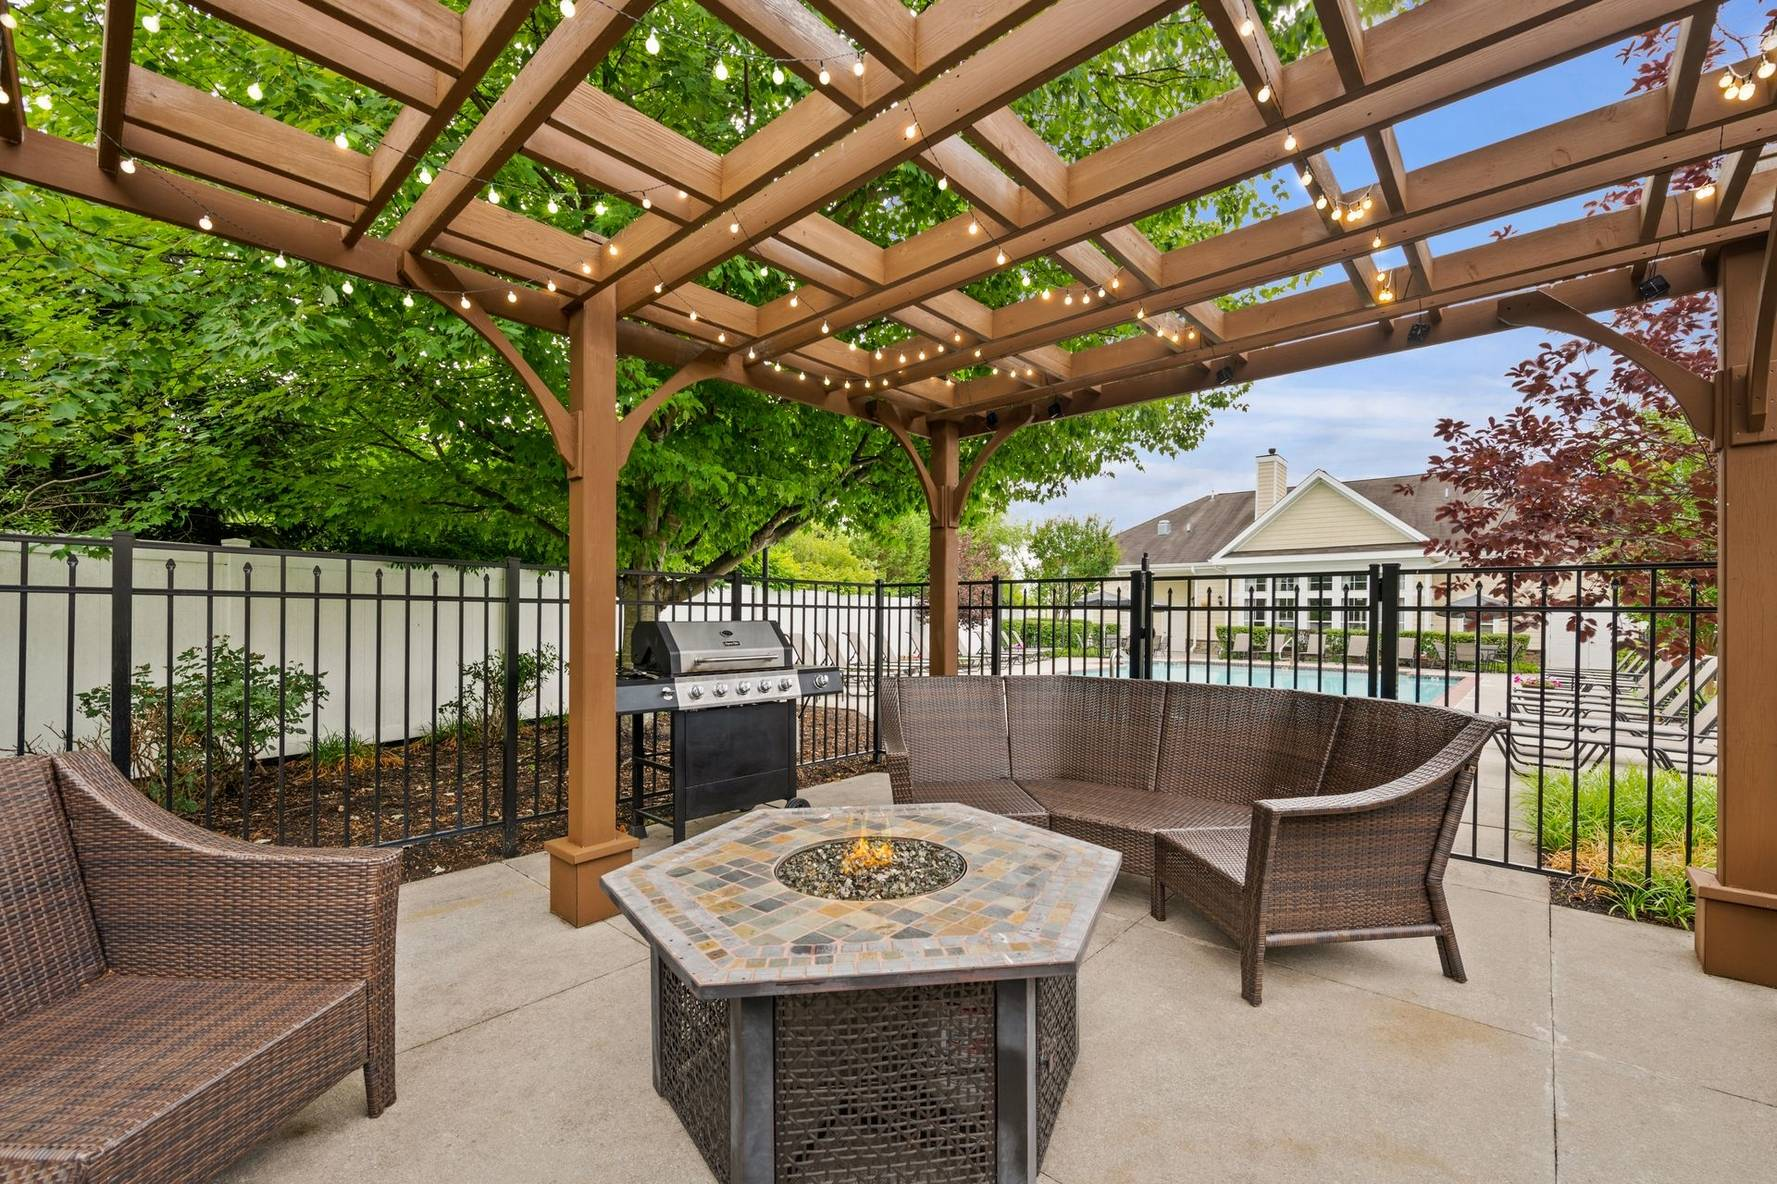 Outdoor seating area with firepit and grill station